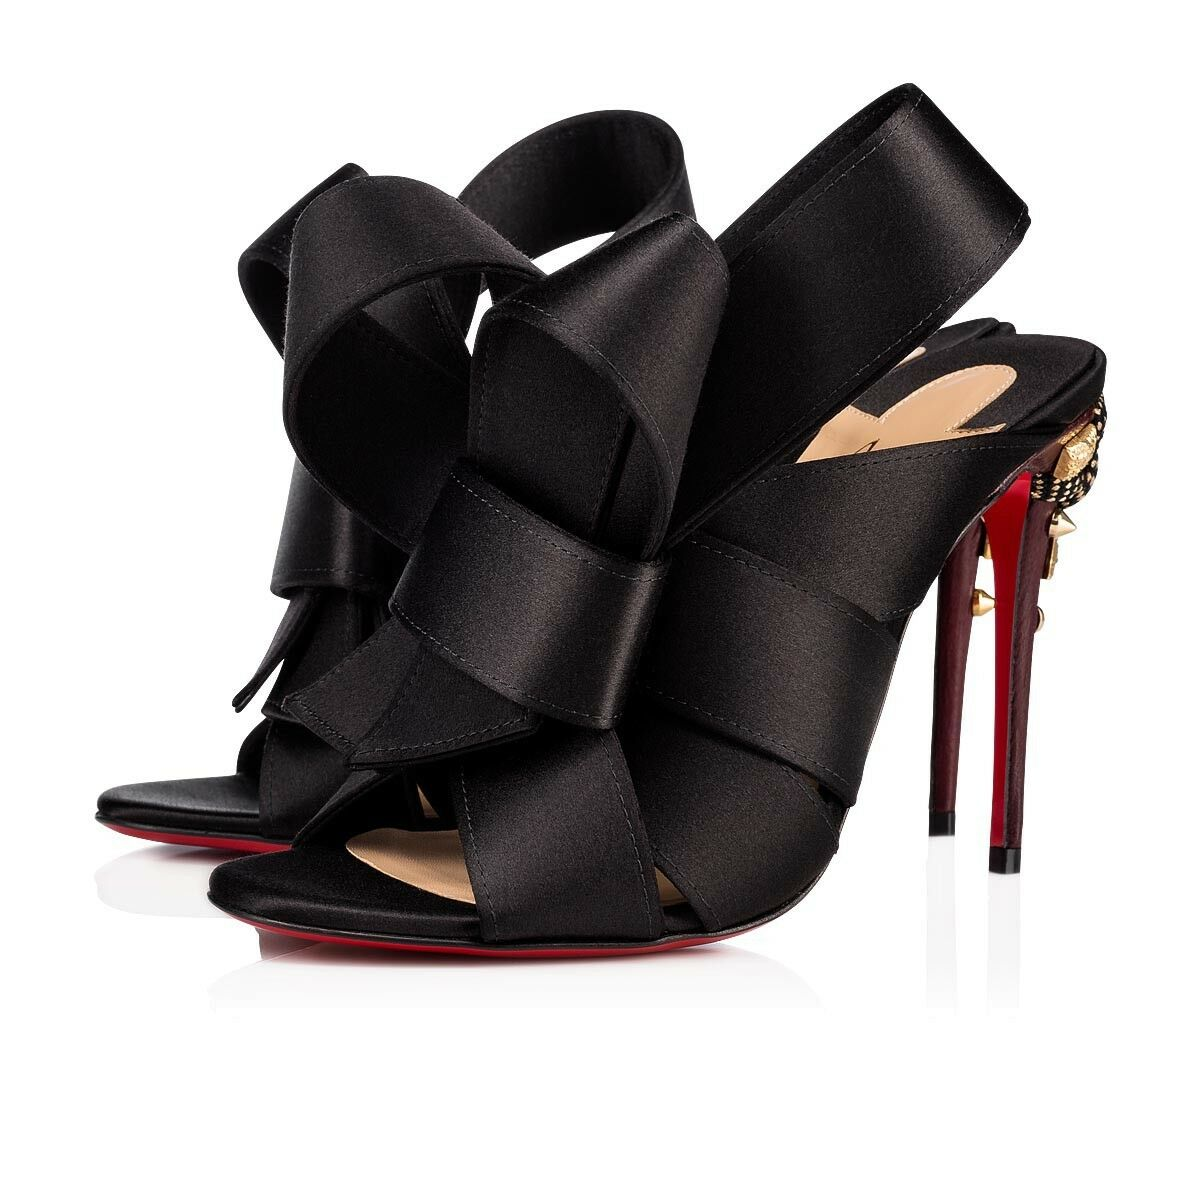 NIB Christian Louboutin Edo Mule 100 Black Satin Backless Sandal Heel Pump 36